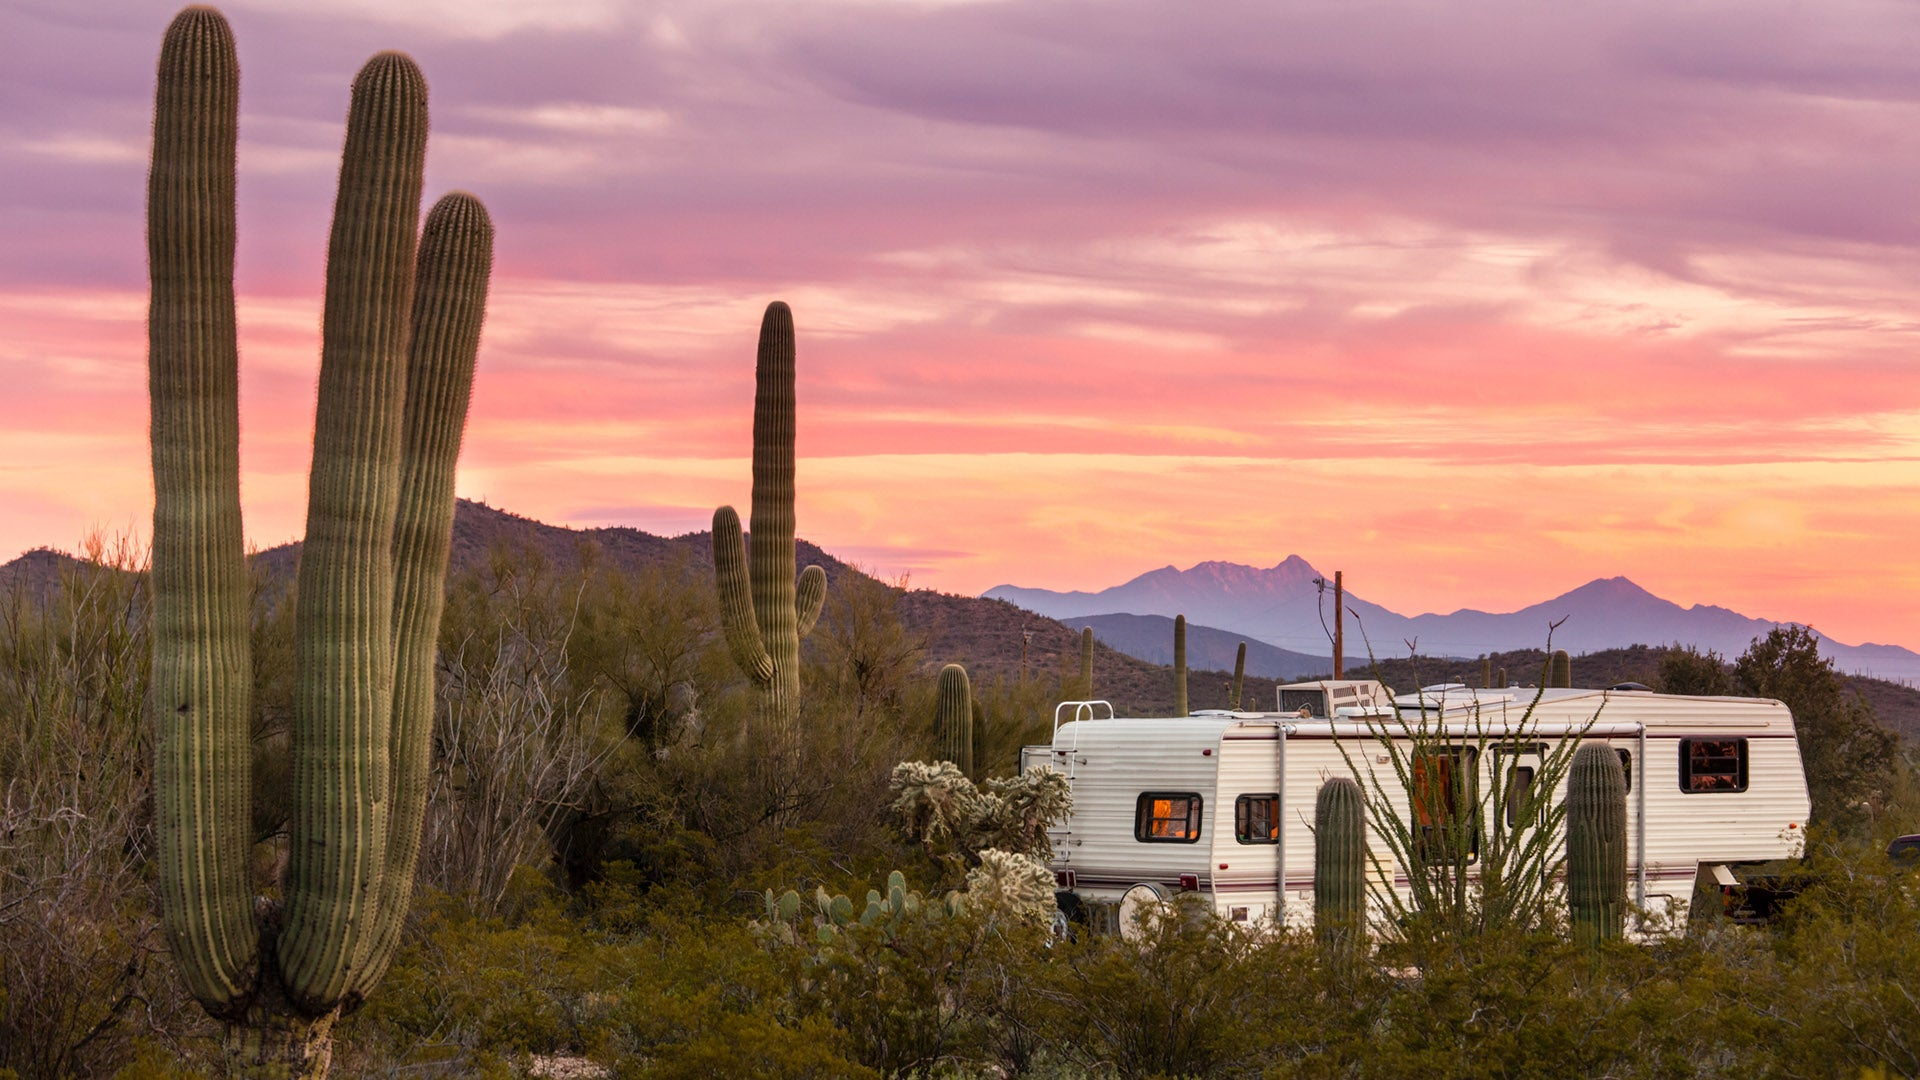 What Your Camper Or Rv Needs For Living Off Grid The Drive